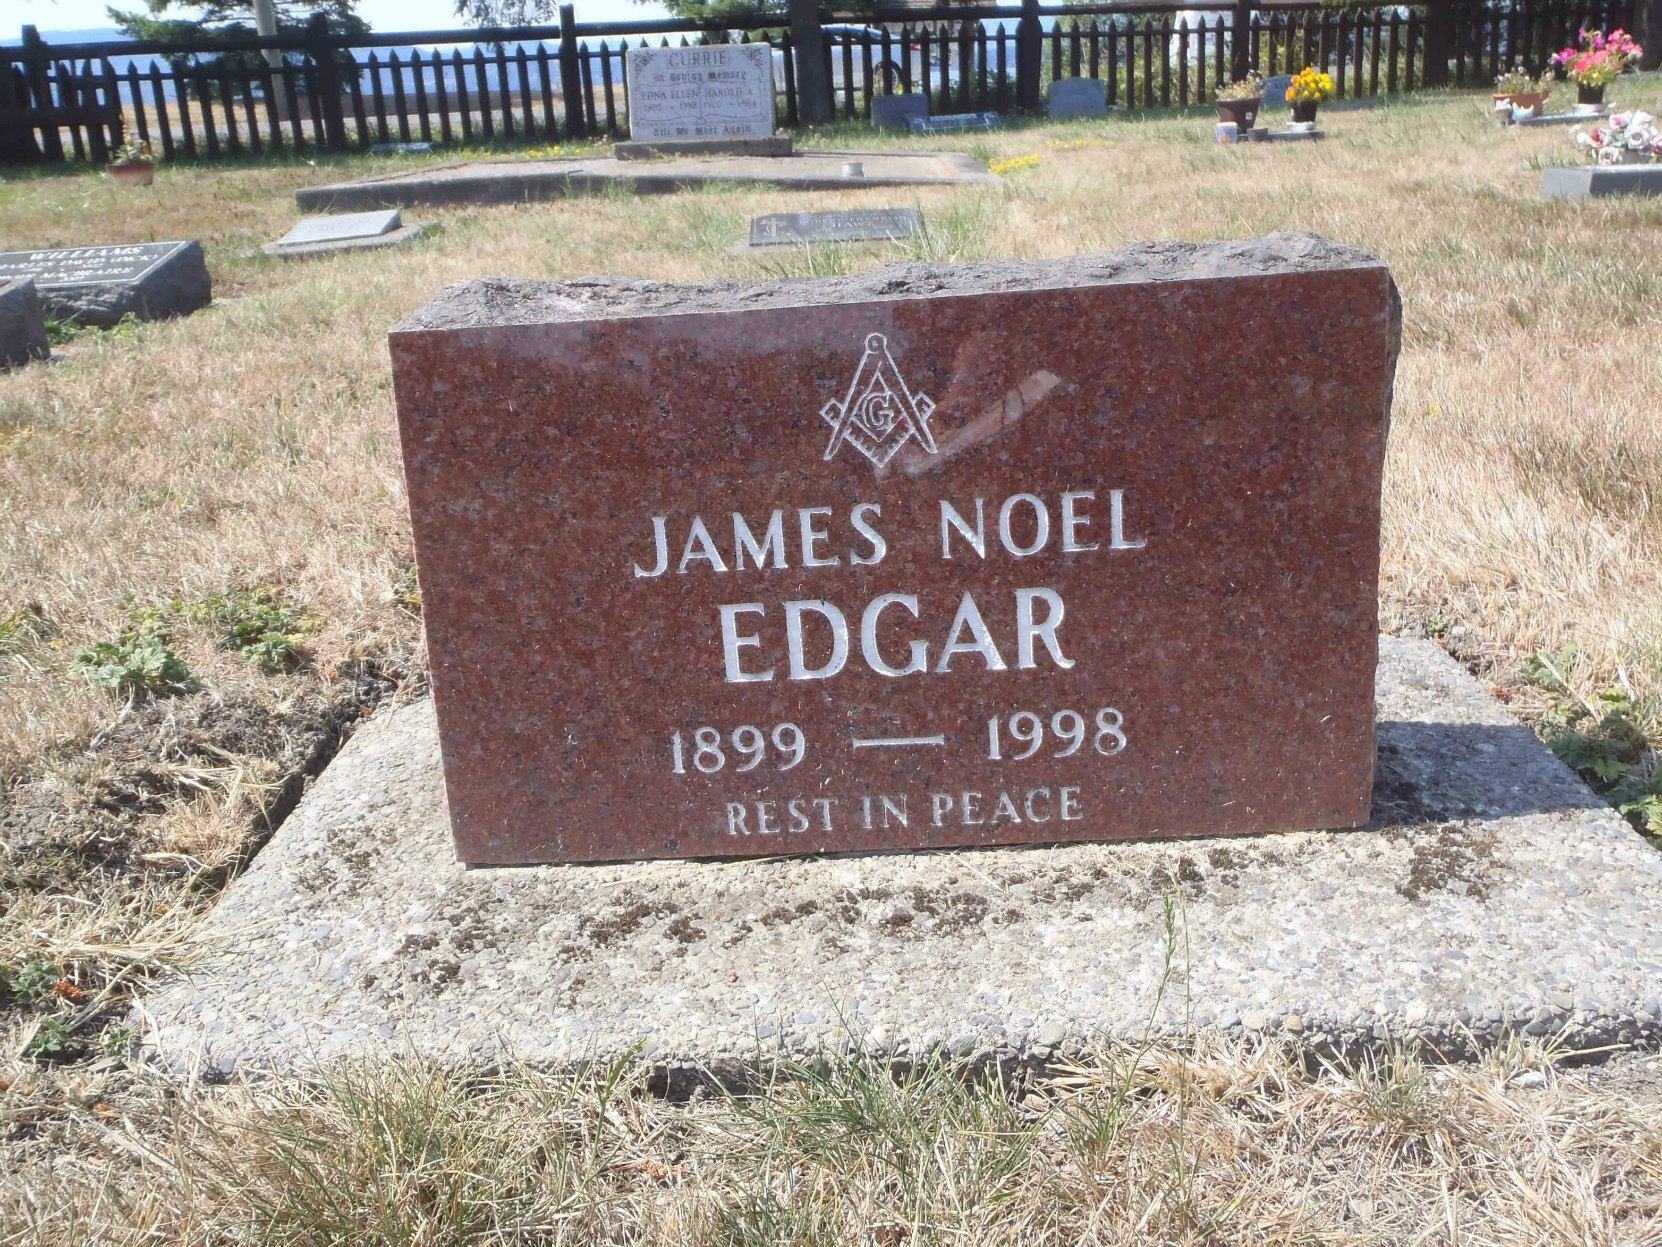 James Noel Edgar grave marker, Holy Trinity Anglican cemetery, North Saanich, B.C.